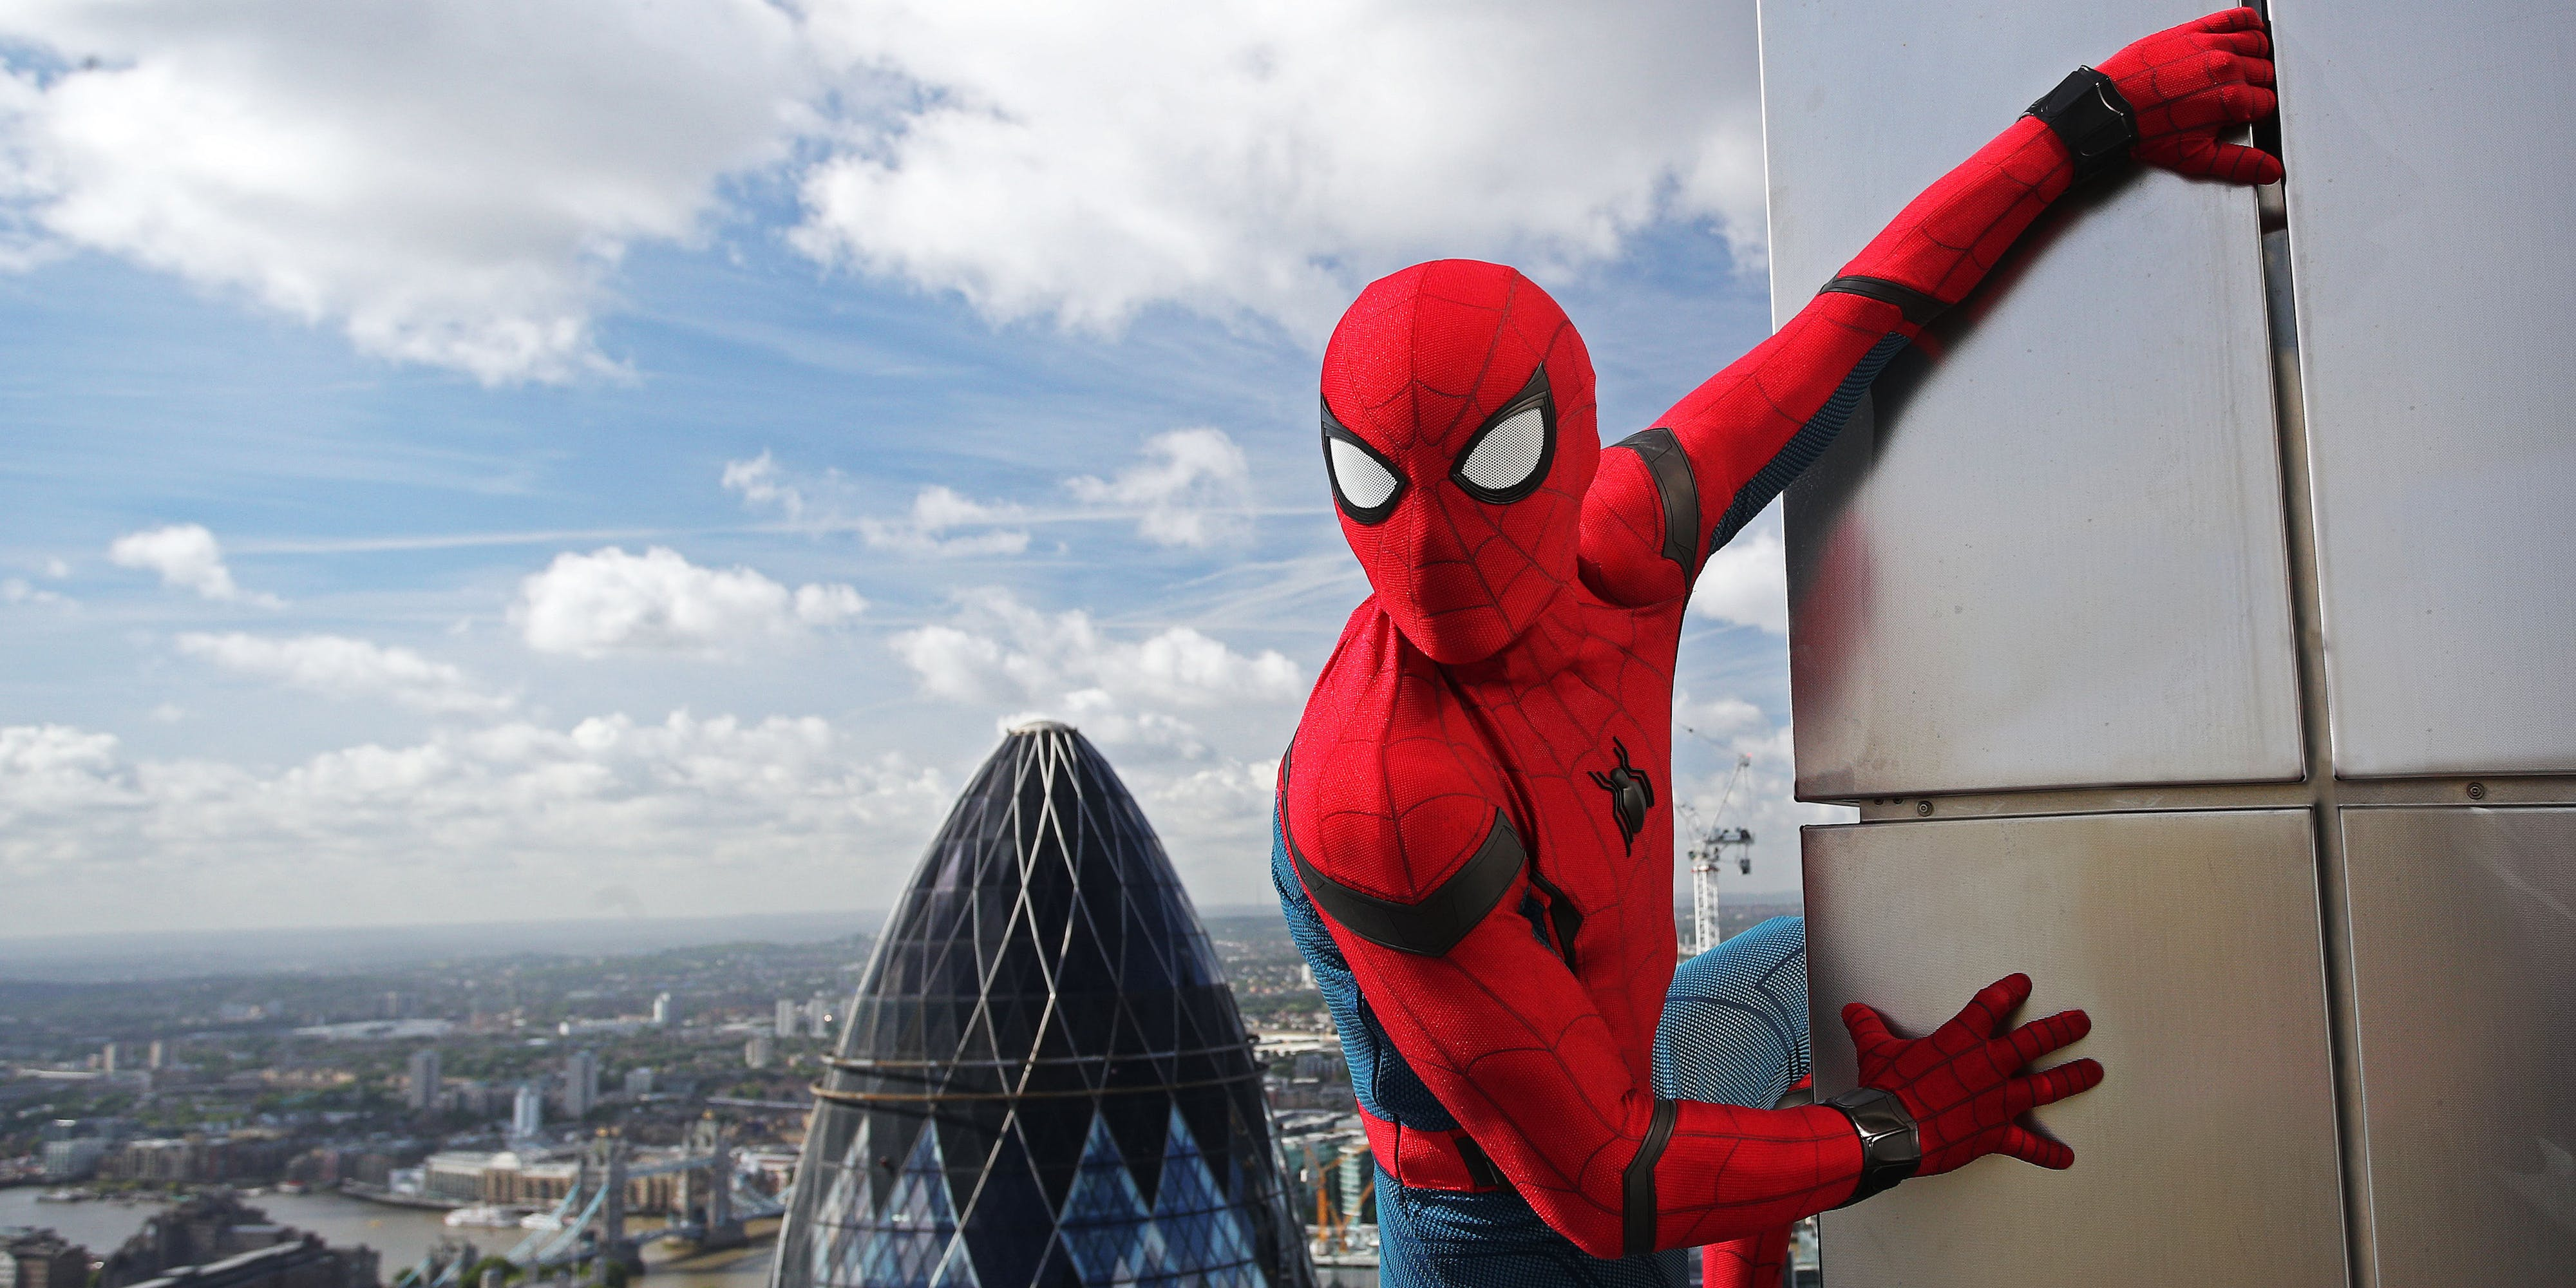 spider-man: far from home trailer has been delayed